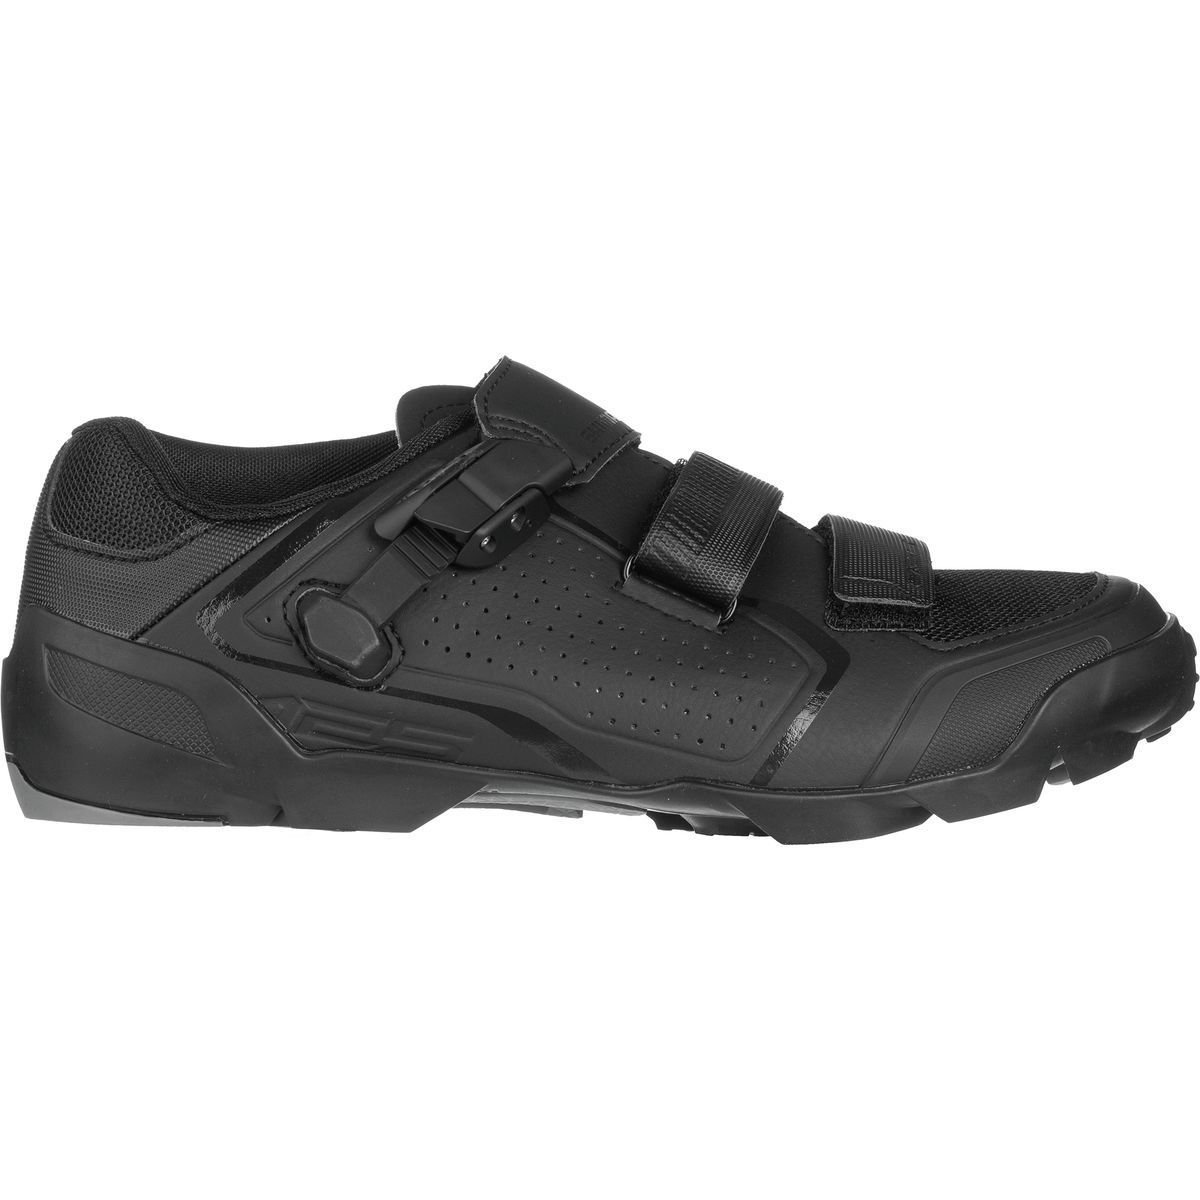 Shimano Unisex SH-ME5 Black Sneaker 42 (US Men's 8.3, US Women's 9.5) Medium